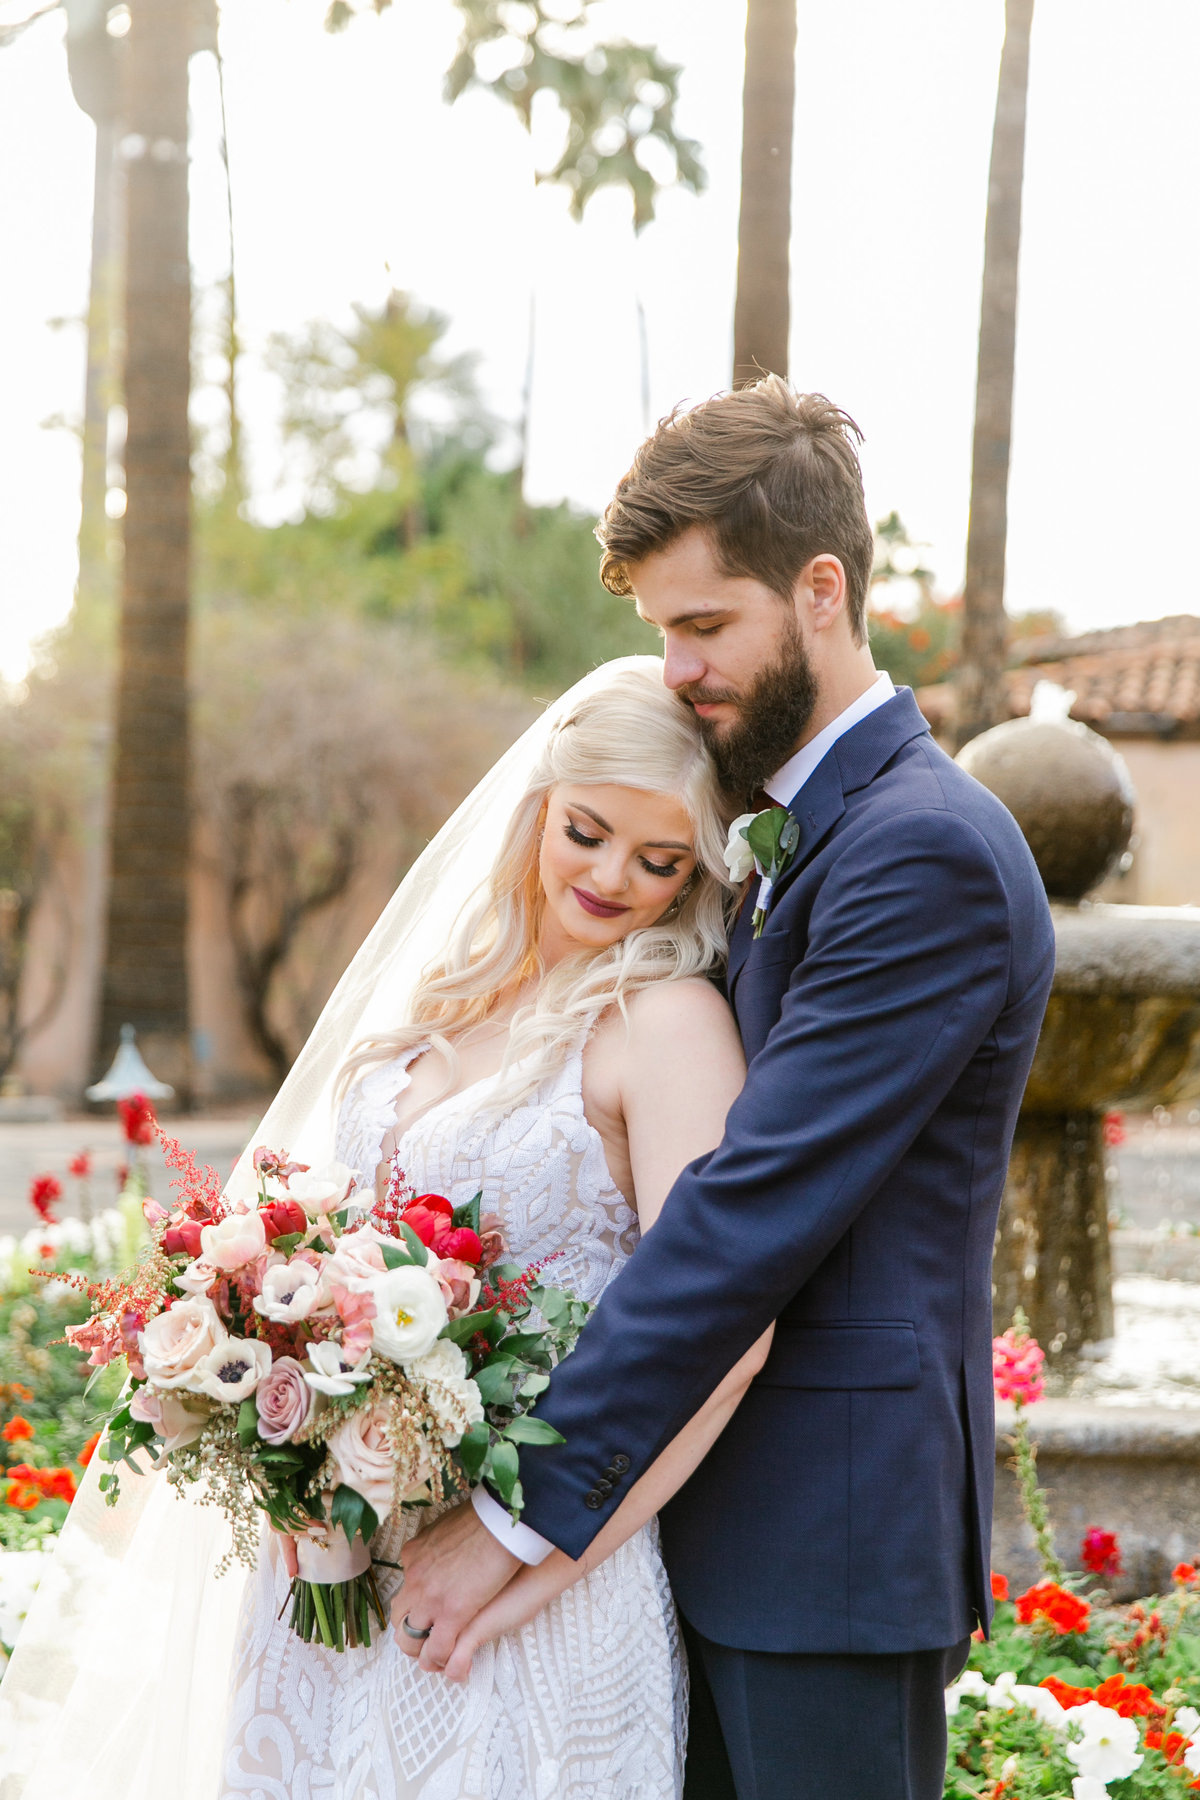 Karlie Colleen Photography - The Royal Palms Wedding - Some Like It Classic - Alex & Sam-544